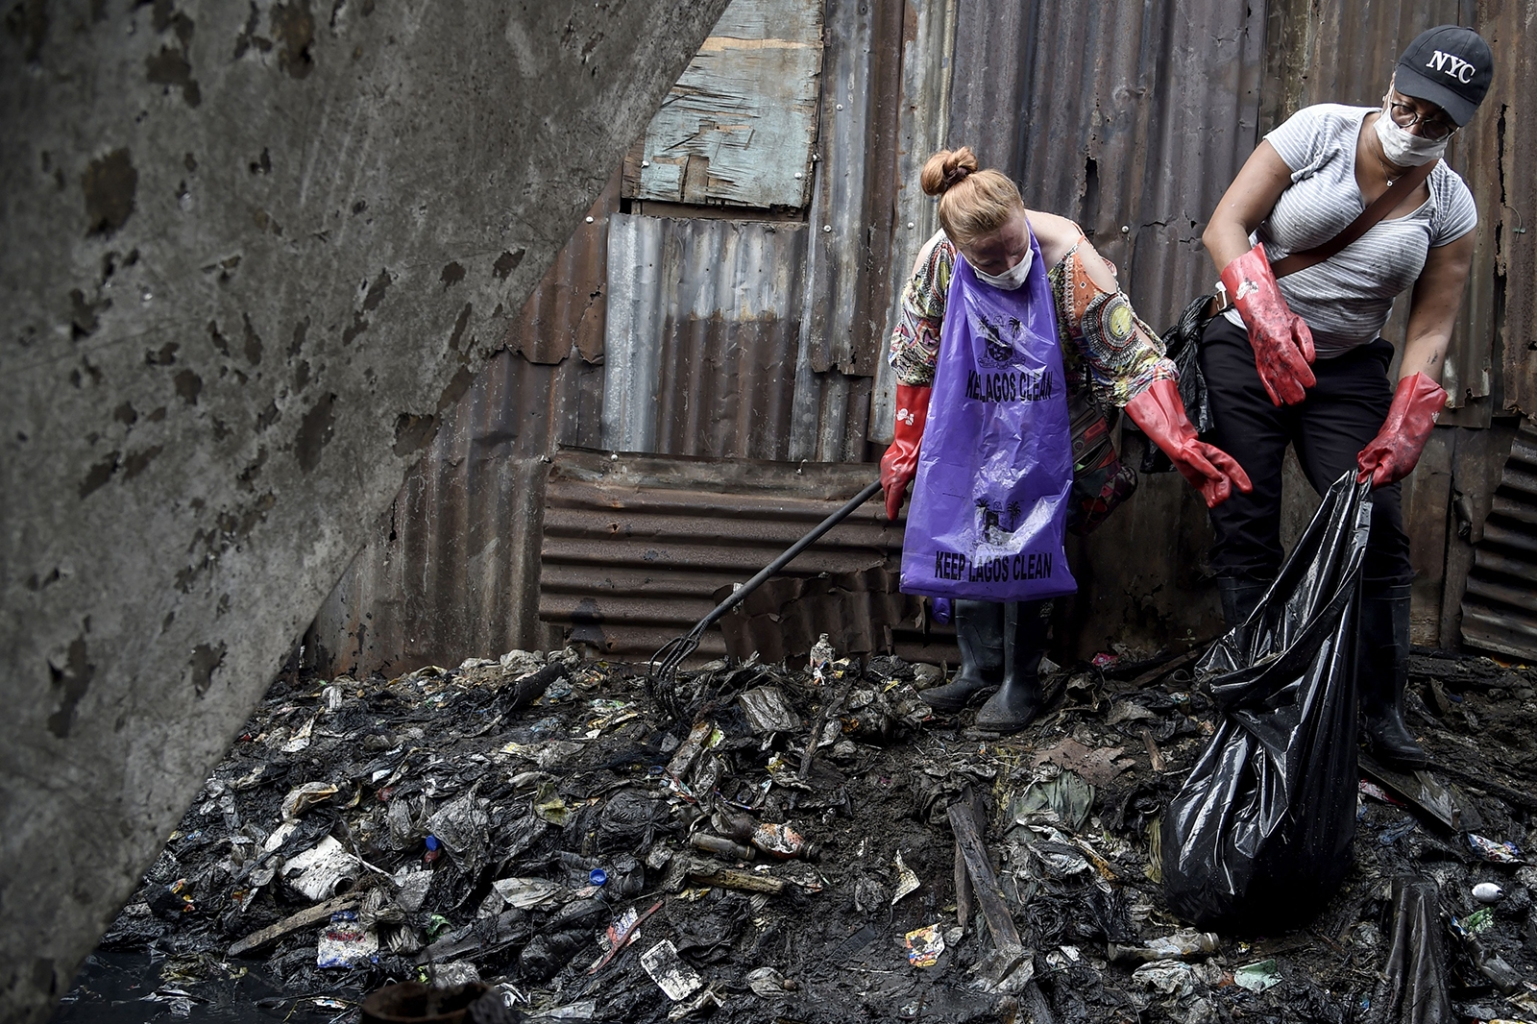 Volunteers for Mondo4Africa, a non-governmental organization, work to clean up waste at Makoko, the largest community slum settlement at the lagoon waterfront in Lagos, Nigeria, on Sept. 21. PIUS UTOMI EKPEI/AFP/Getty Images